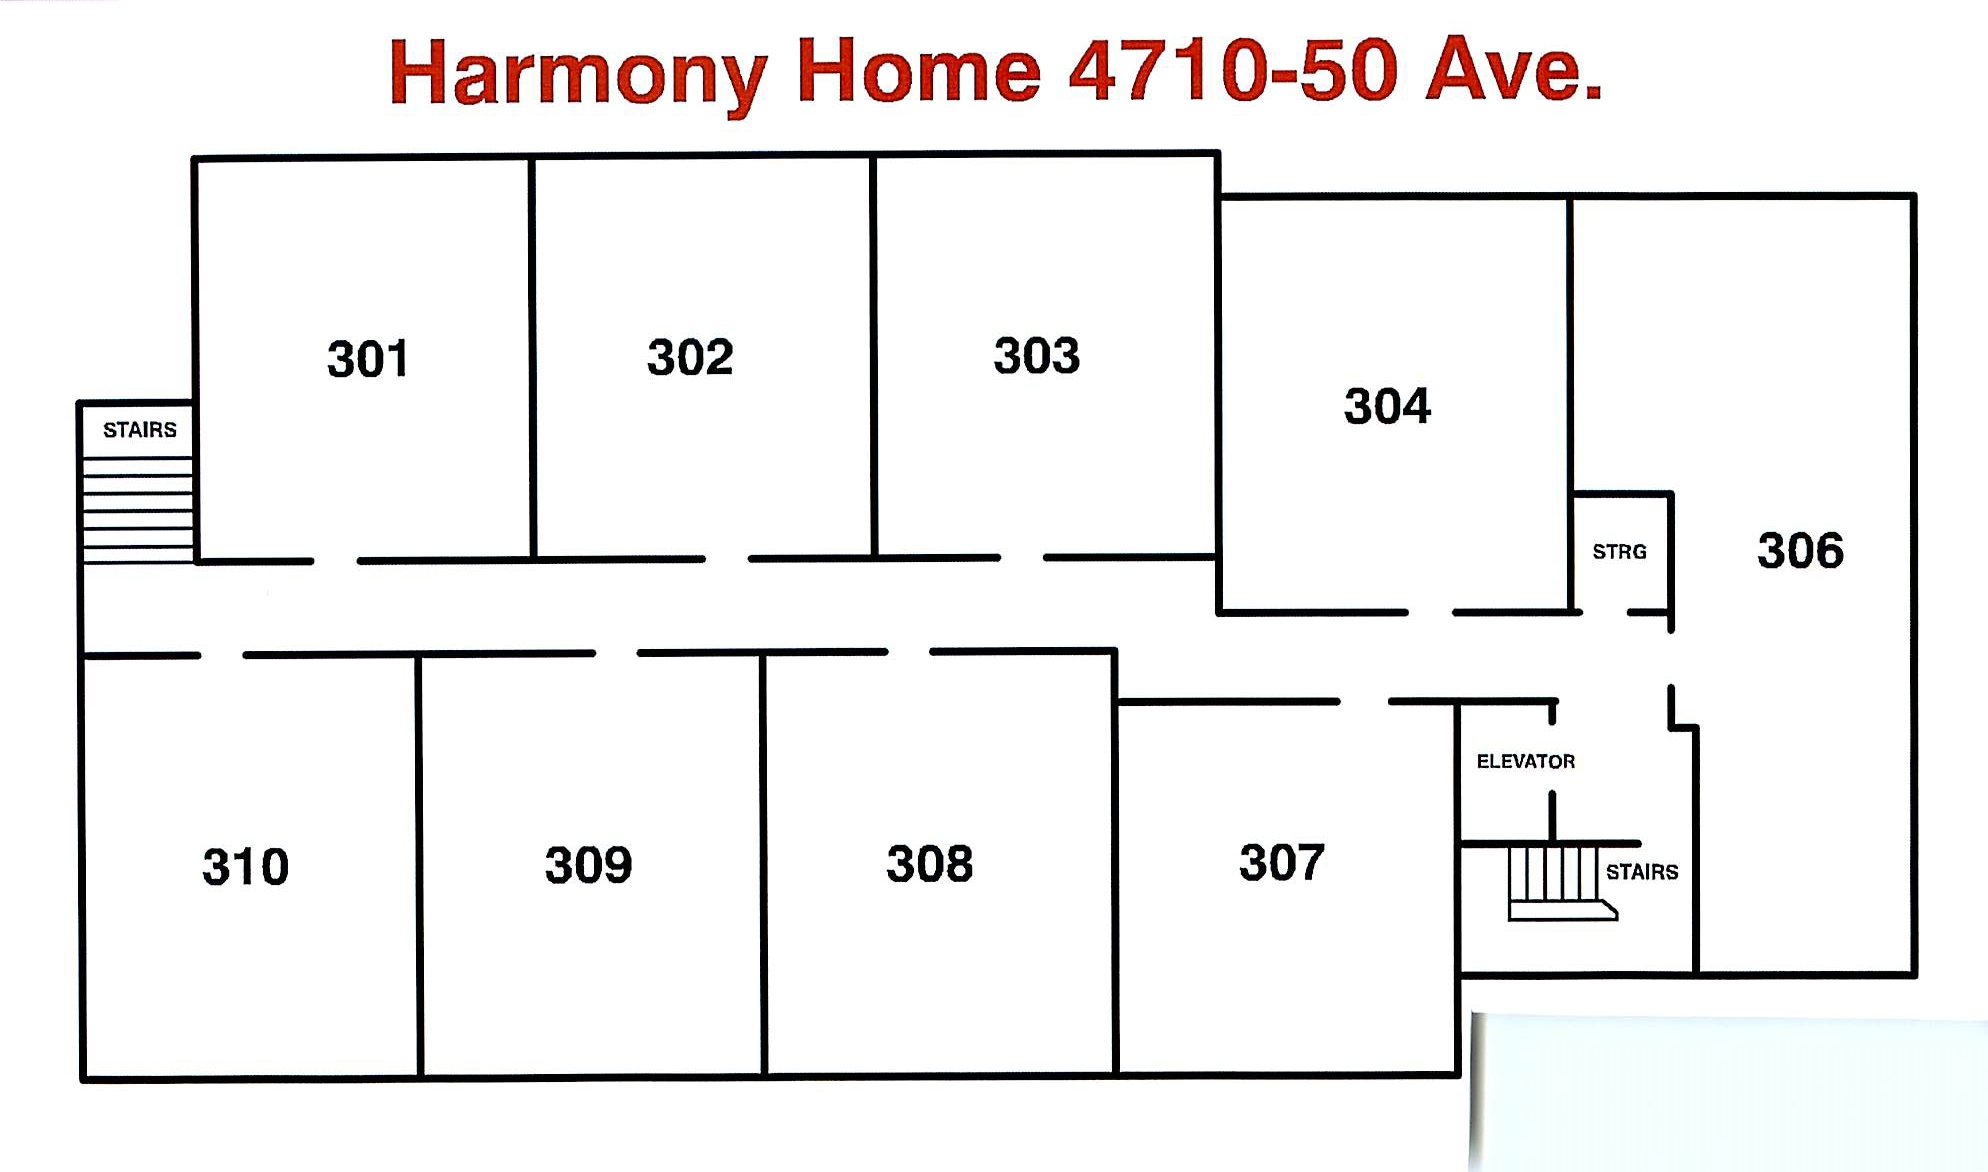 Floor Plan - Harmony Home 3rd Floor May 2018